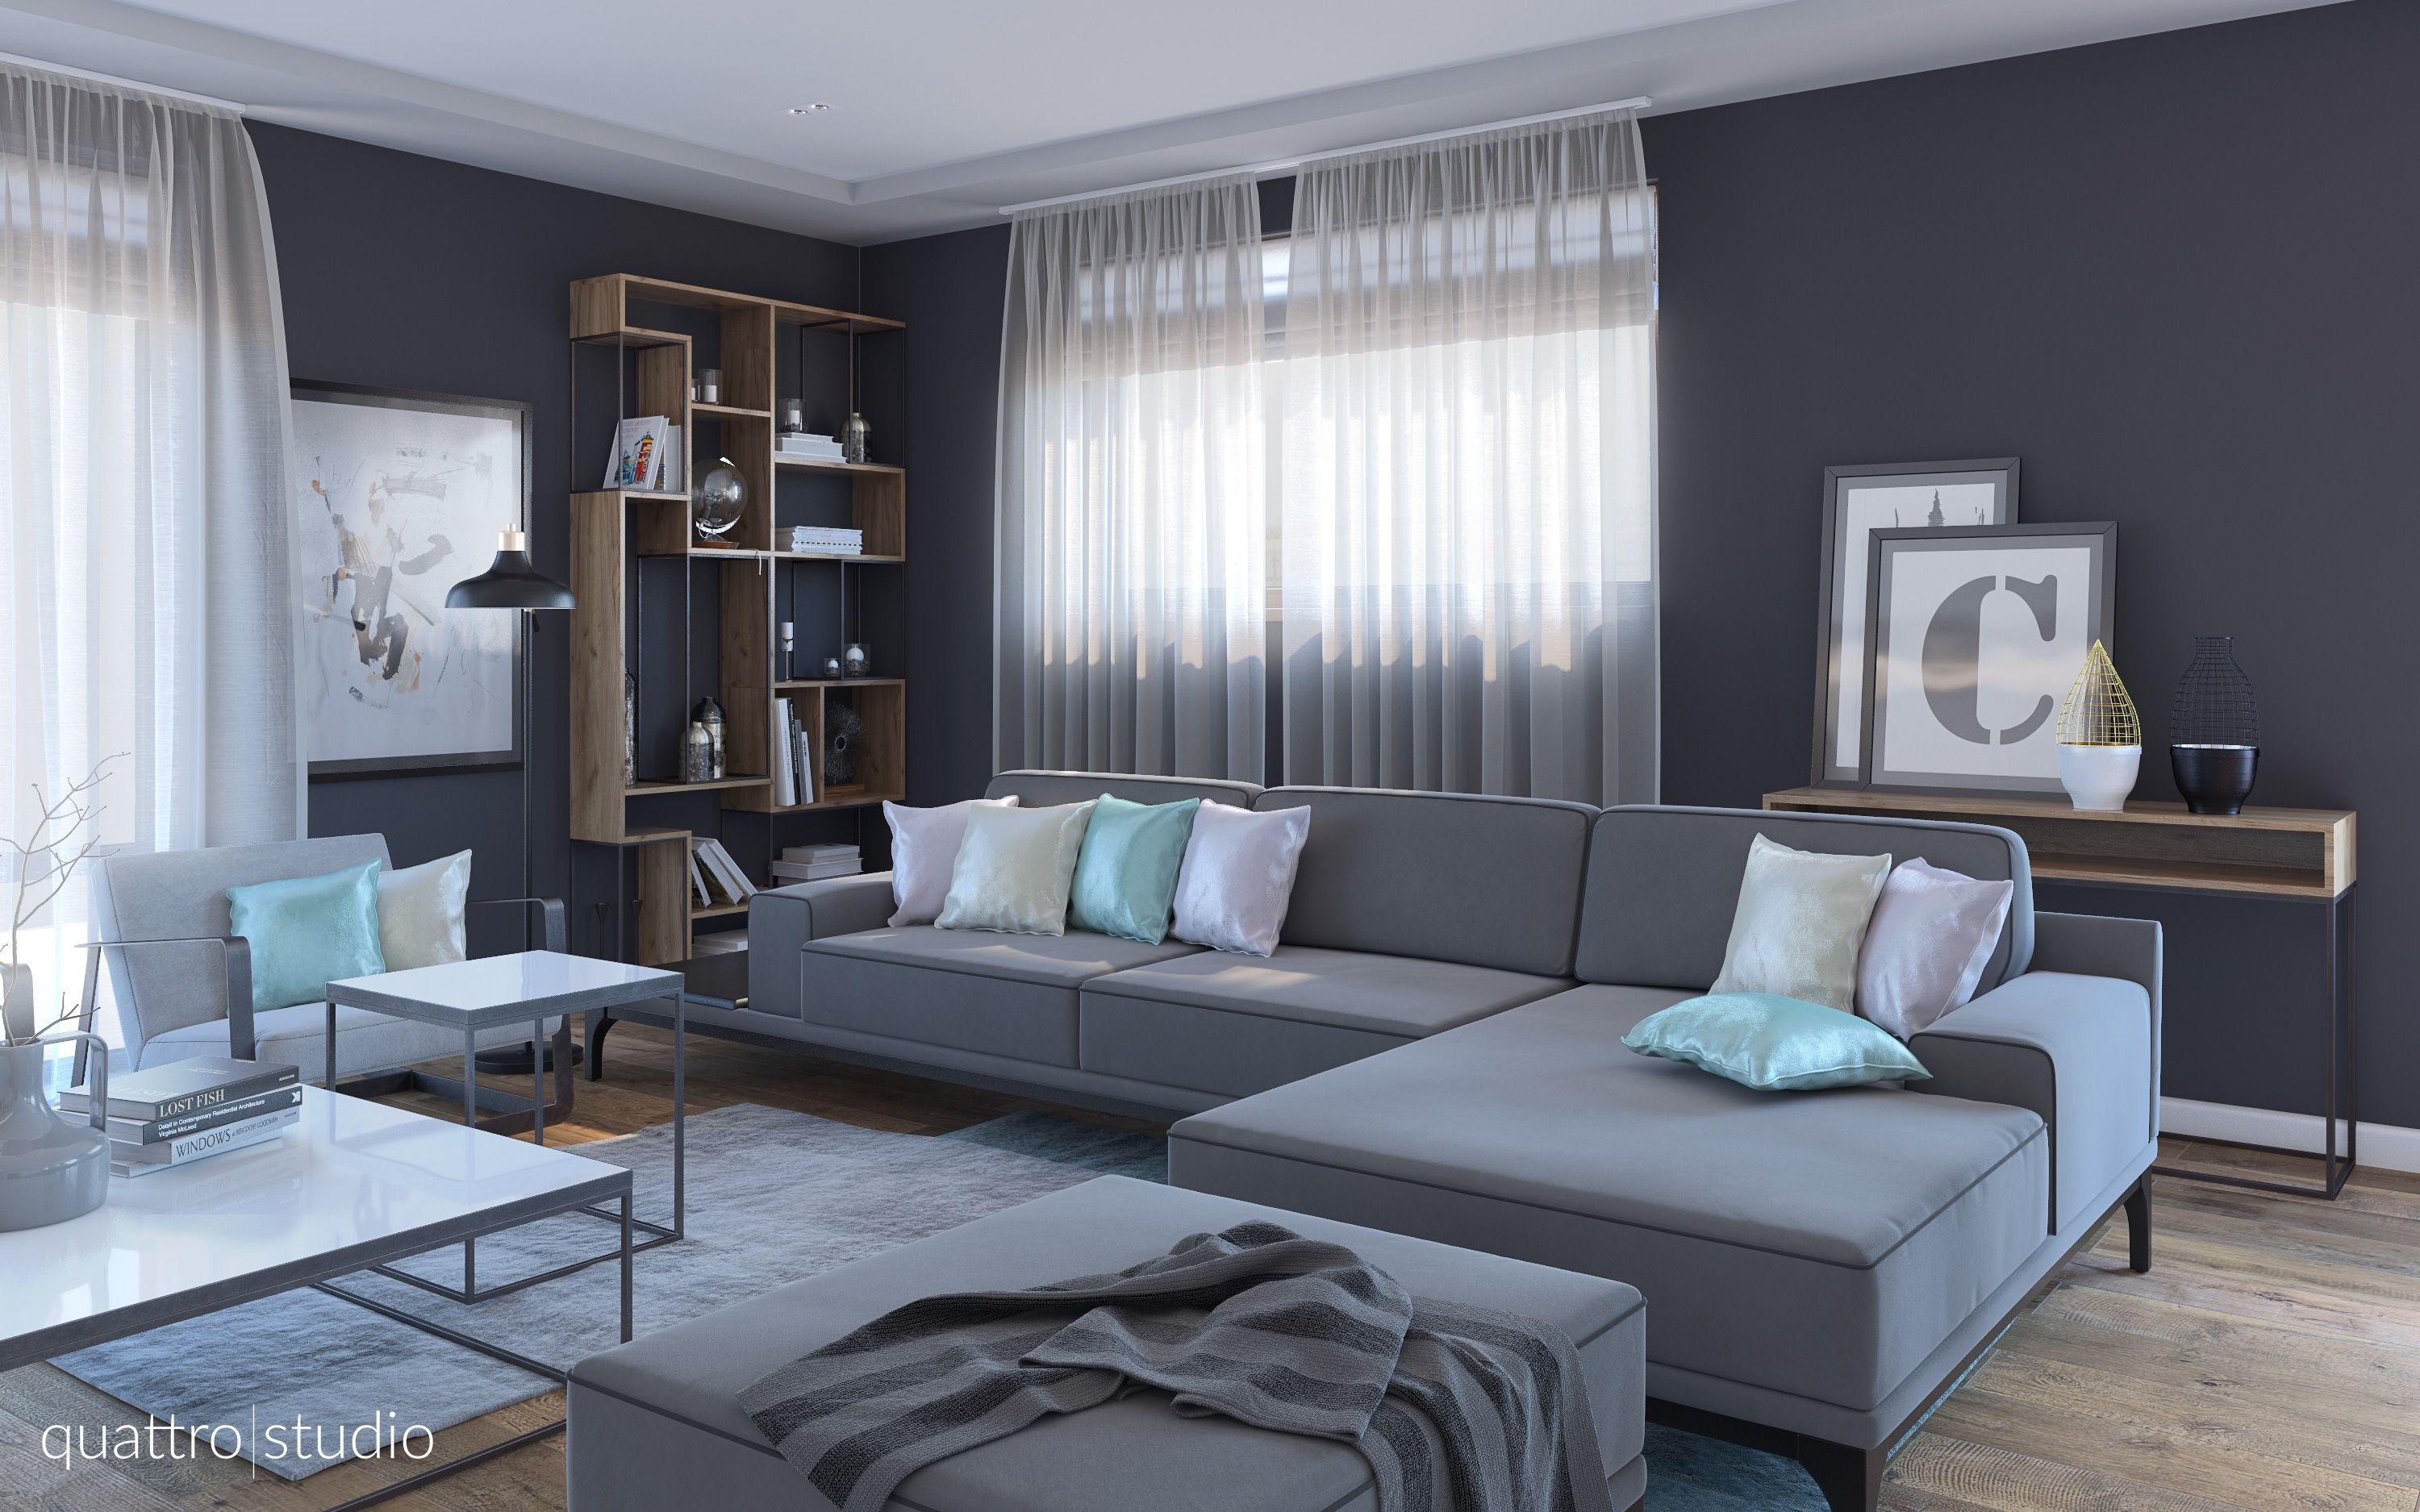 Contemporary living room. Yatas angular sofa. Grey tones